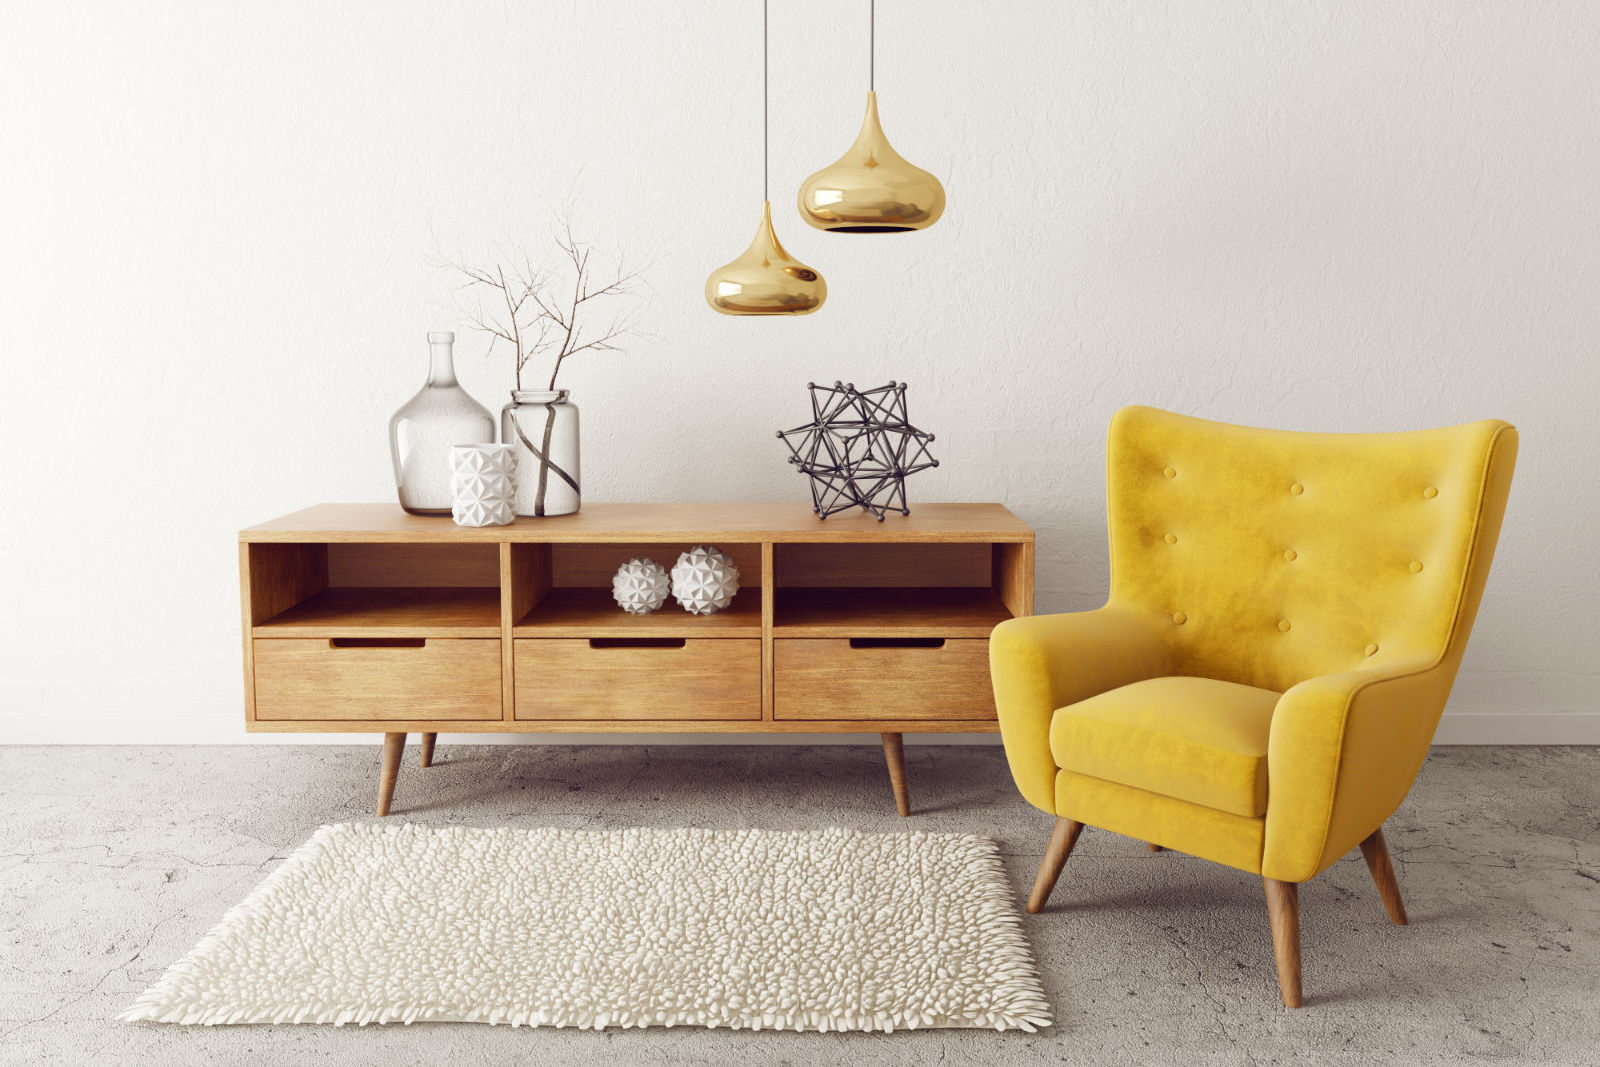 Minimal home decor with yellow armchair next to a square rug, pendant lights, and low wooden cabinet of art objects.